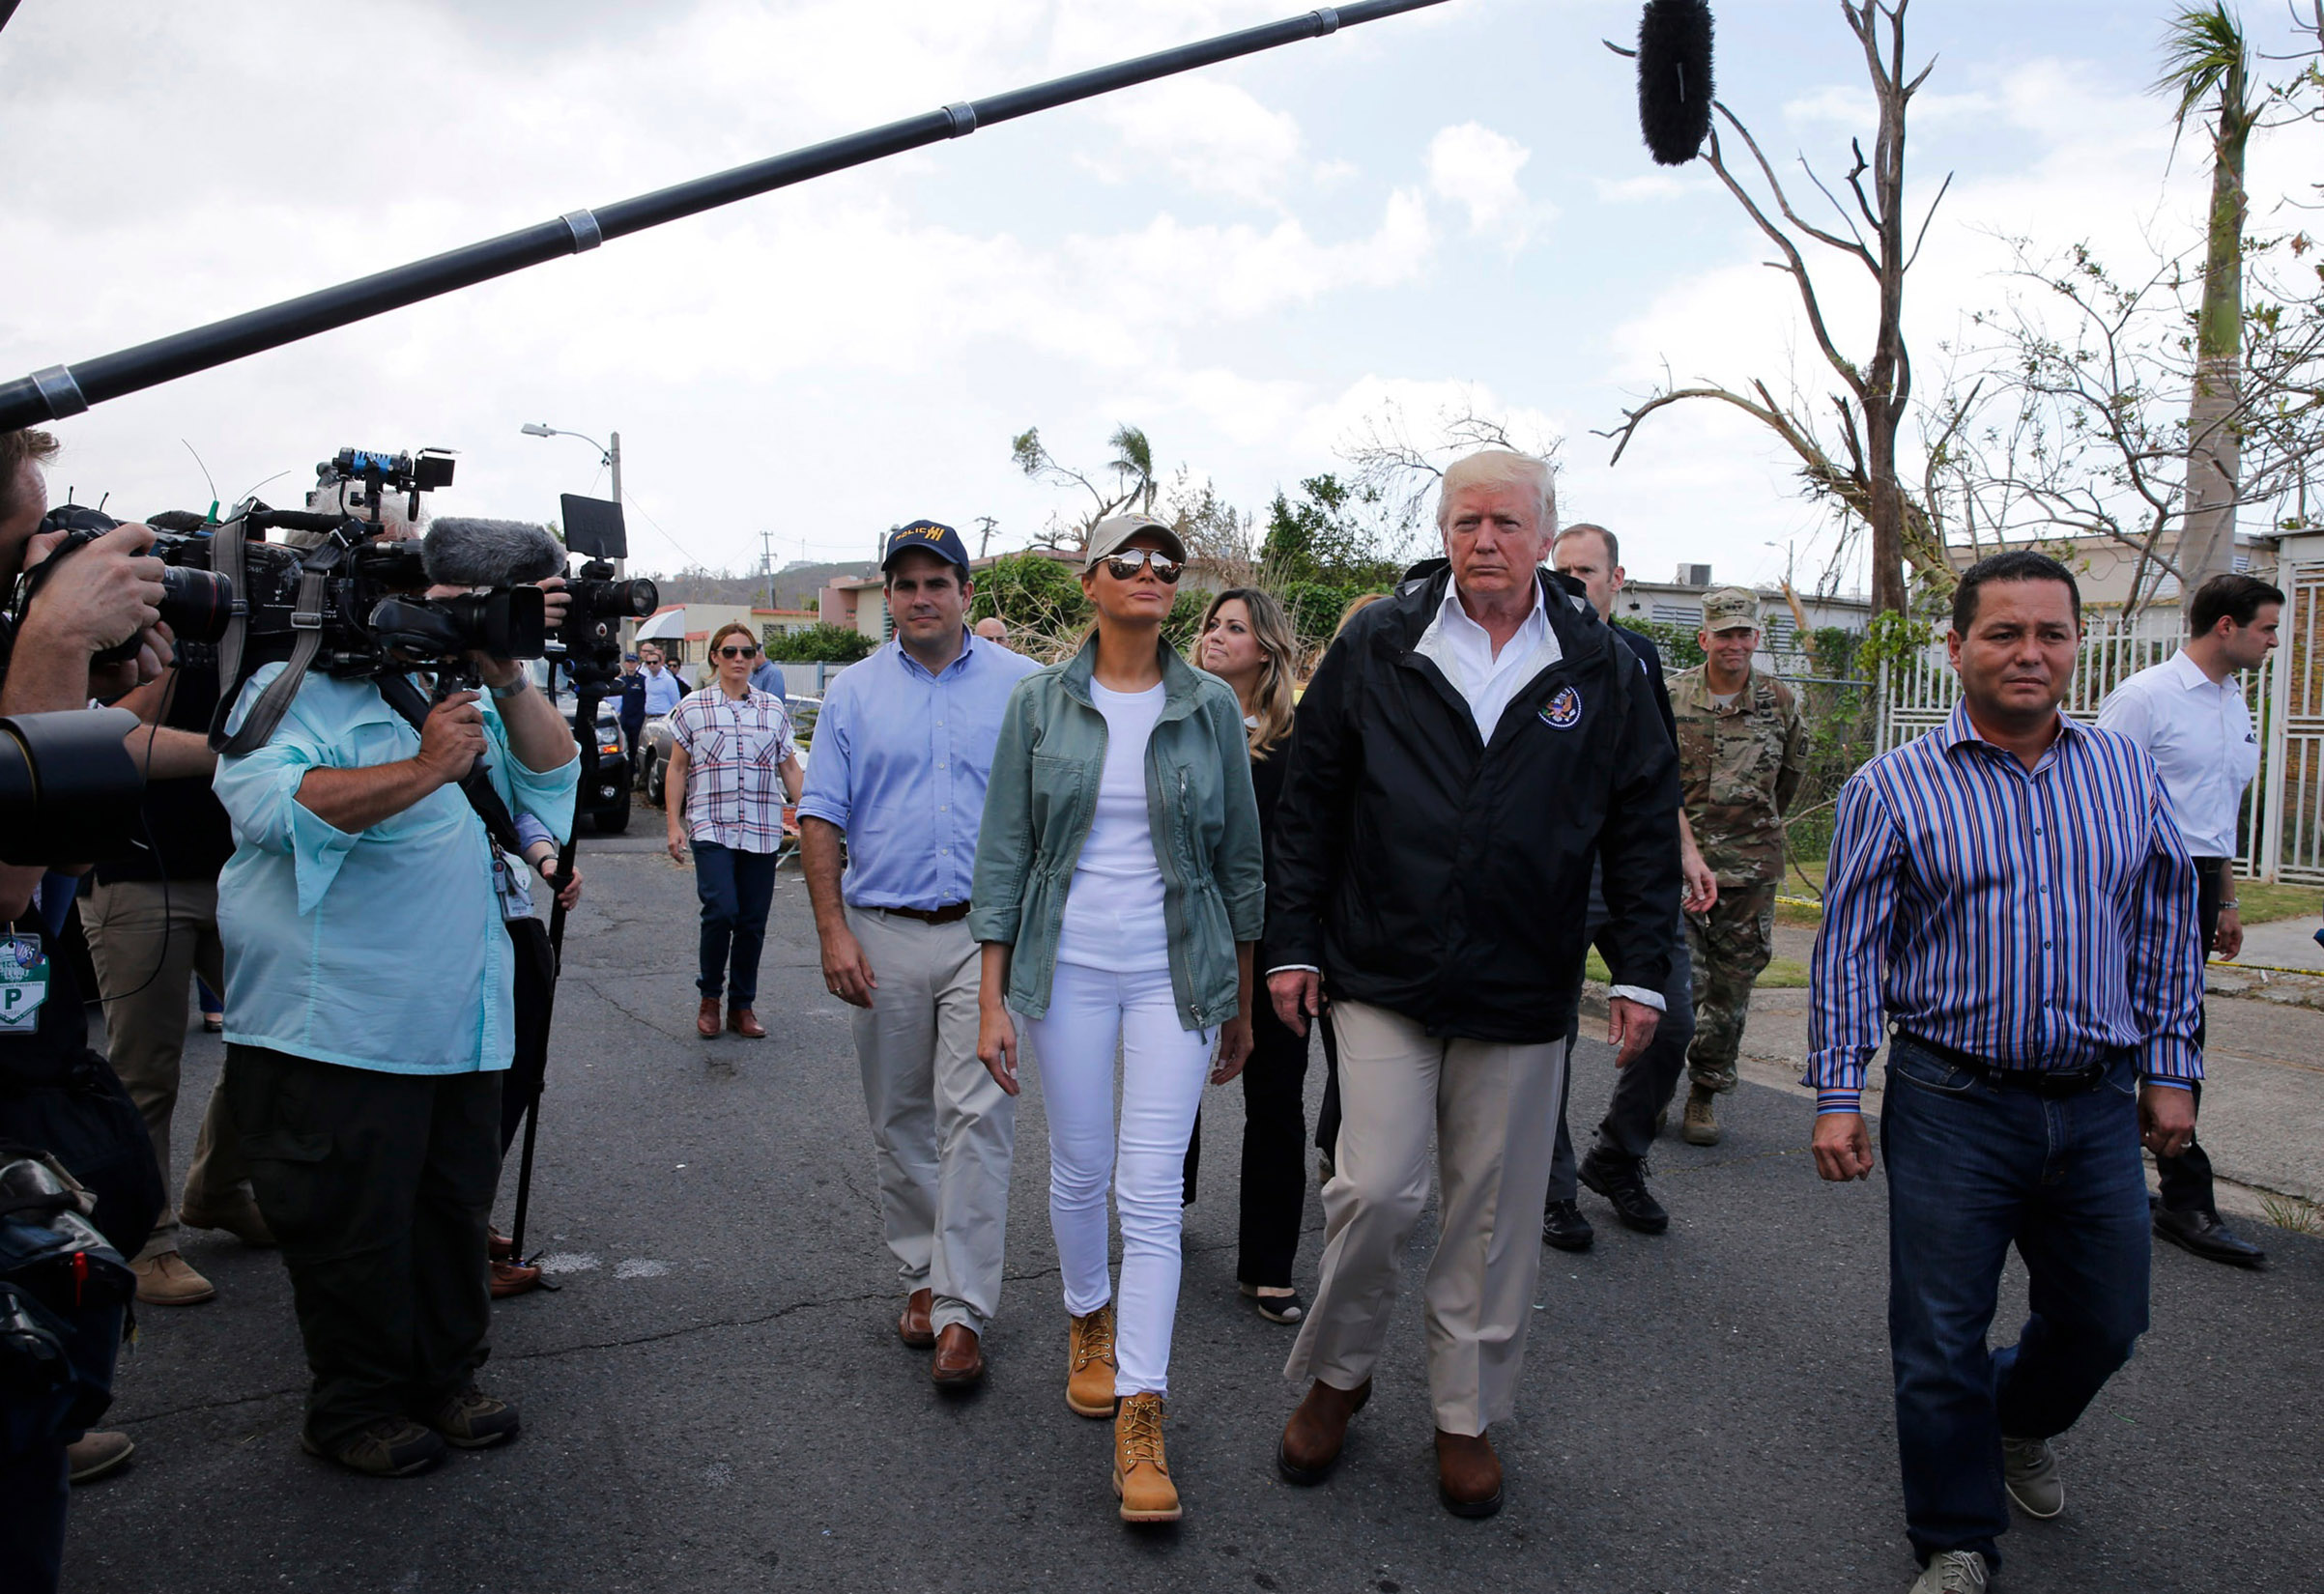 President Donald Trump and first lady Melania walk through a neighborhood damaged by Hurricane Maria in San Juan, Puerto Rico, U.S., Oct. 3, 2017. The first lady wears a baseball cap, a green jacket and Timberland boots.